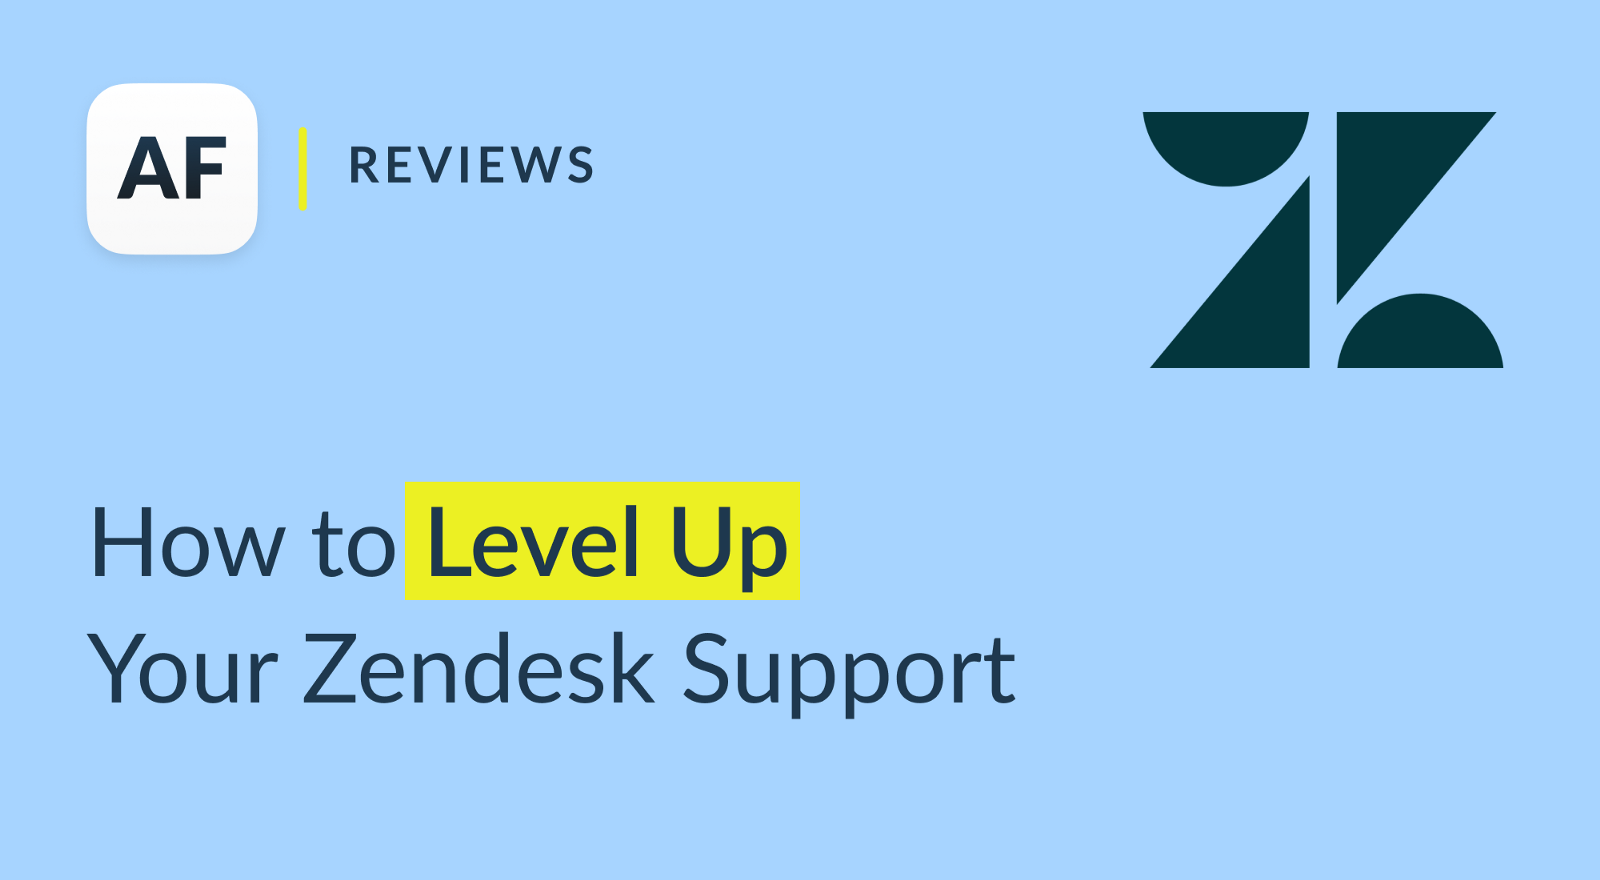 How to Level Up Your Zendesk Support